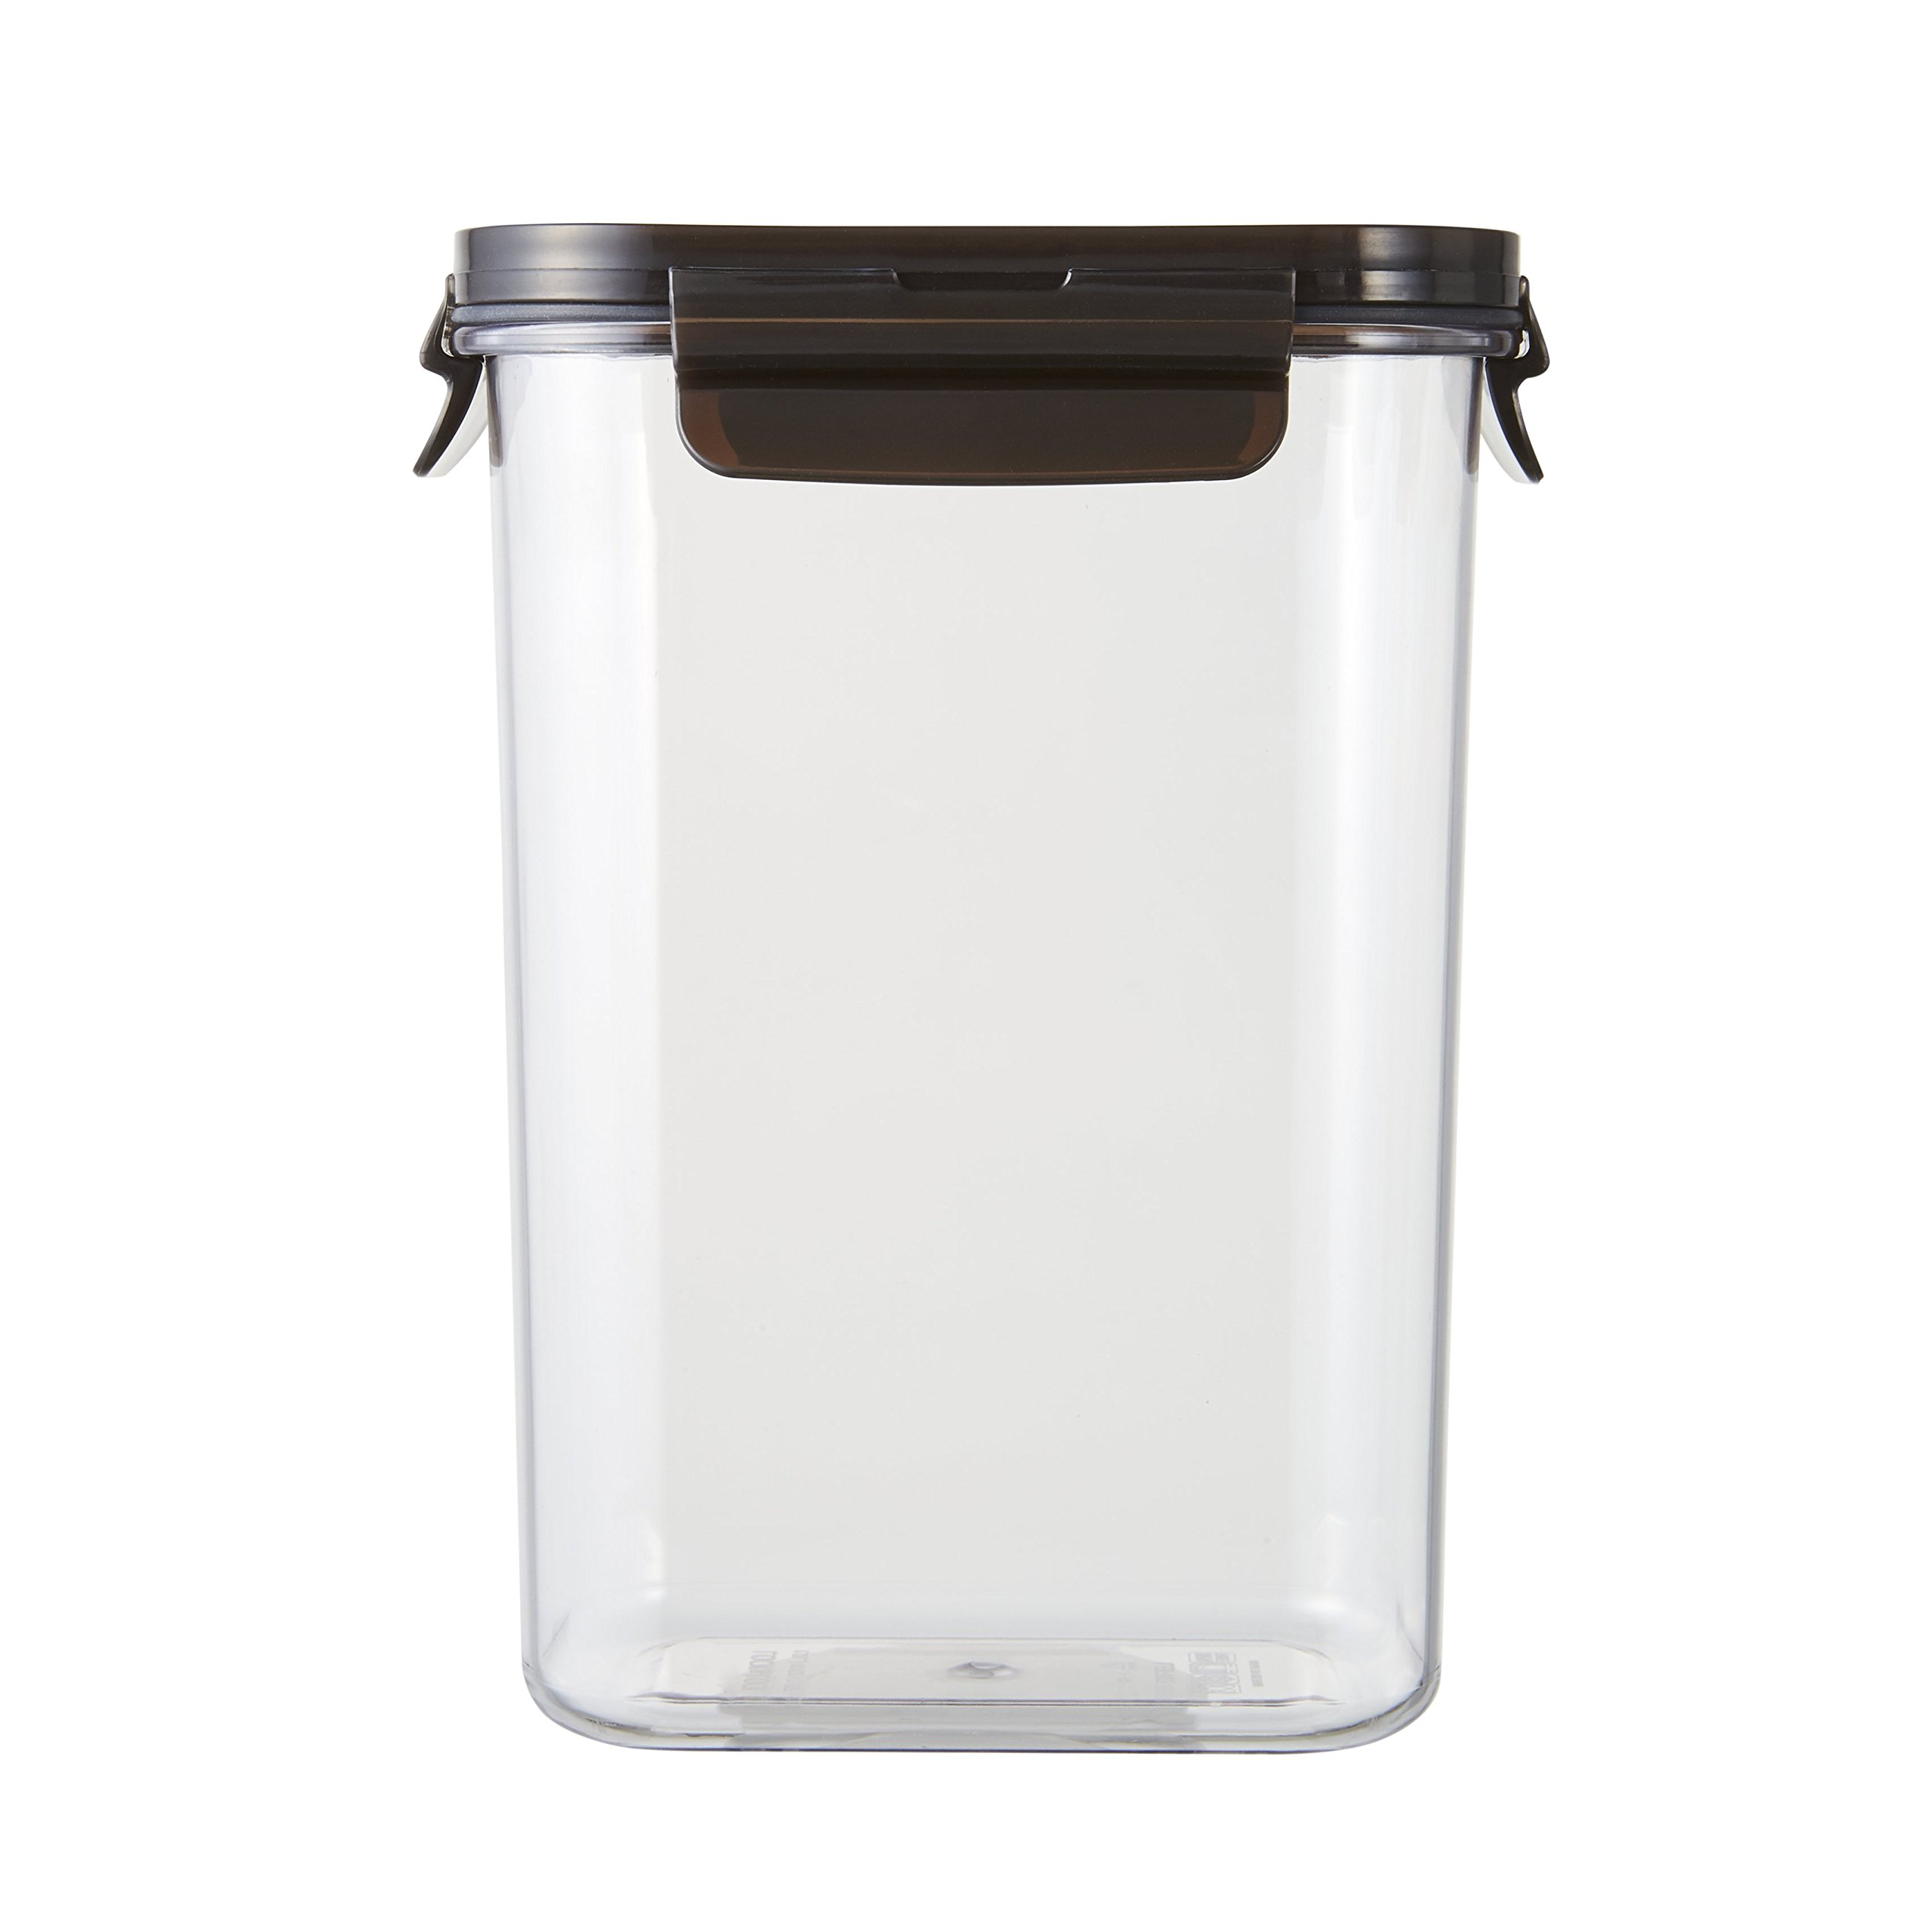 Locklock Food Container Hpl850 Square Short 420ml Daftar Harga Classics 750ml Hpl933a Lock Premium 51 Cup Crystal Clear Bpa Free 100